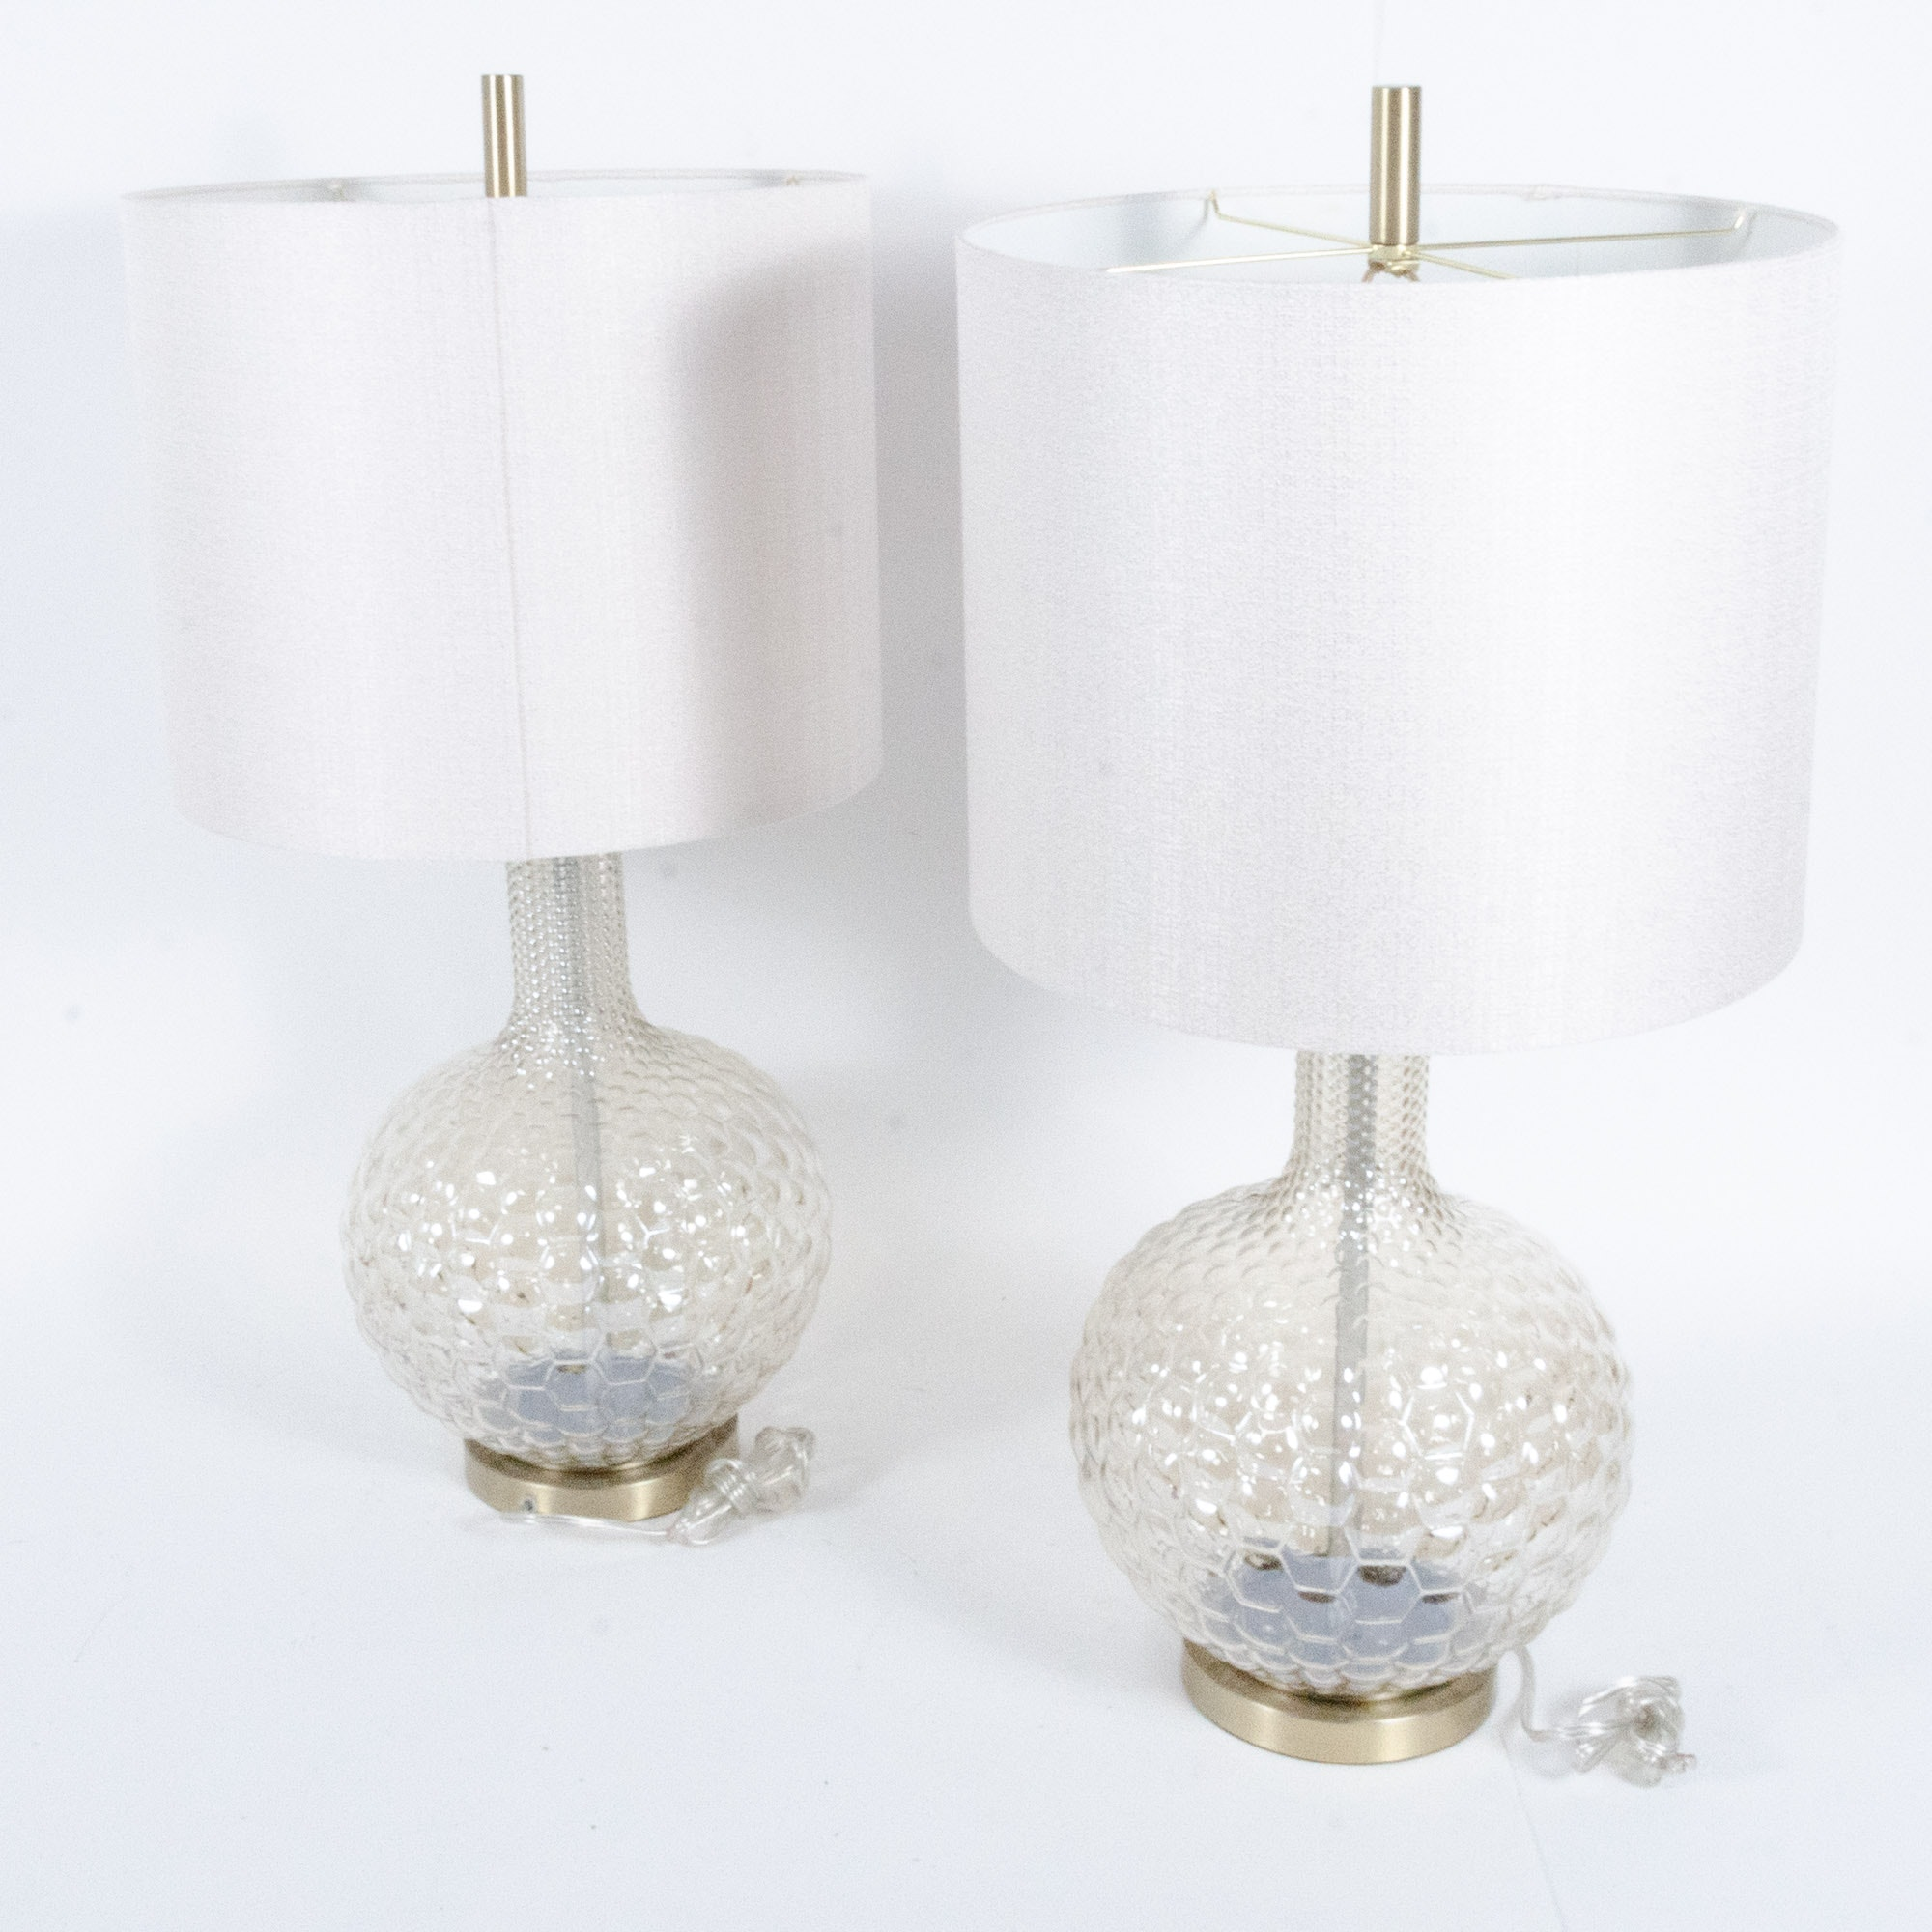 Clear Hobnail Glass Table Lamps with Sateen Shades